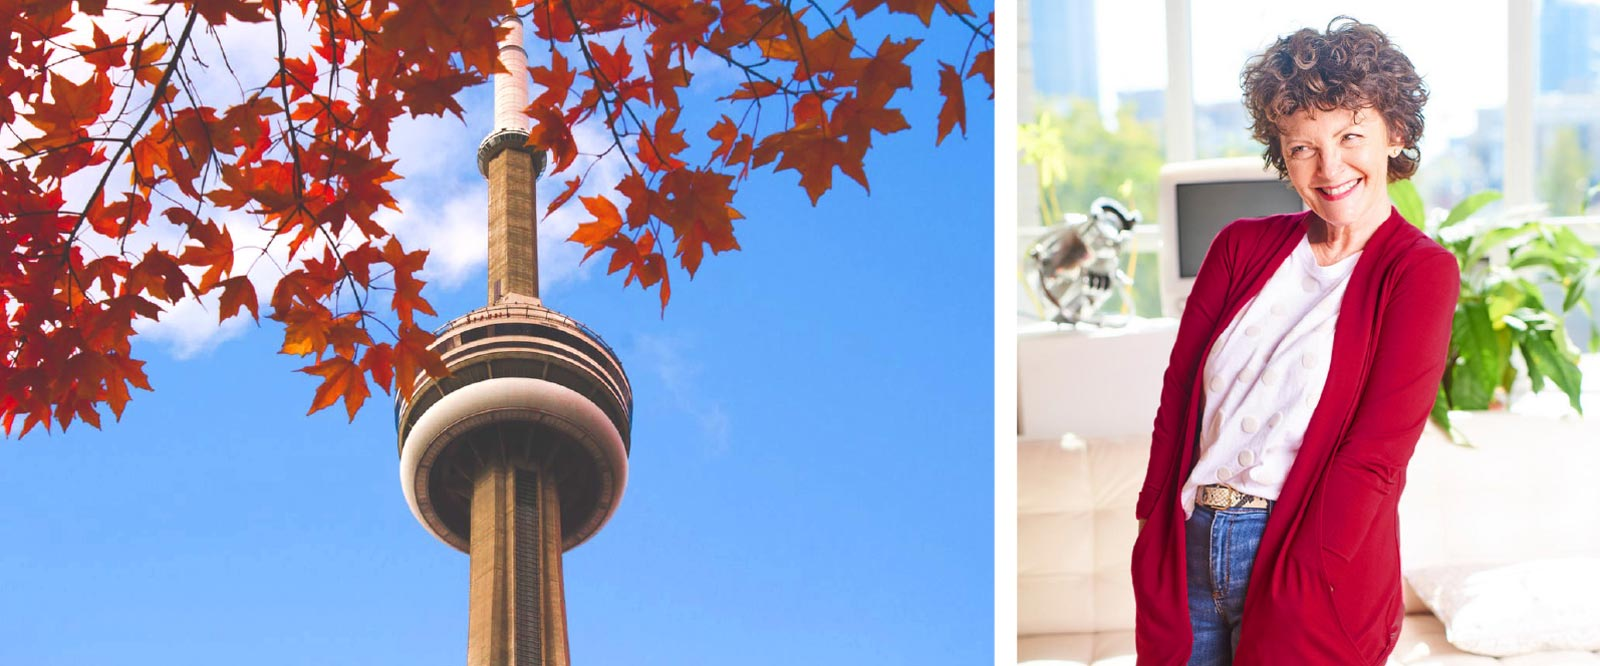 CN Tower with maple leaves